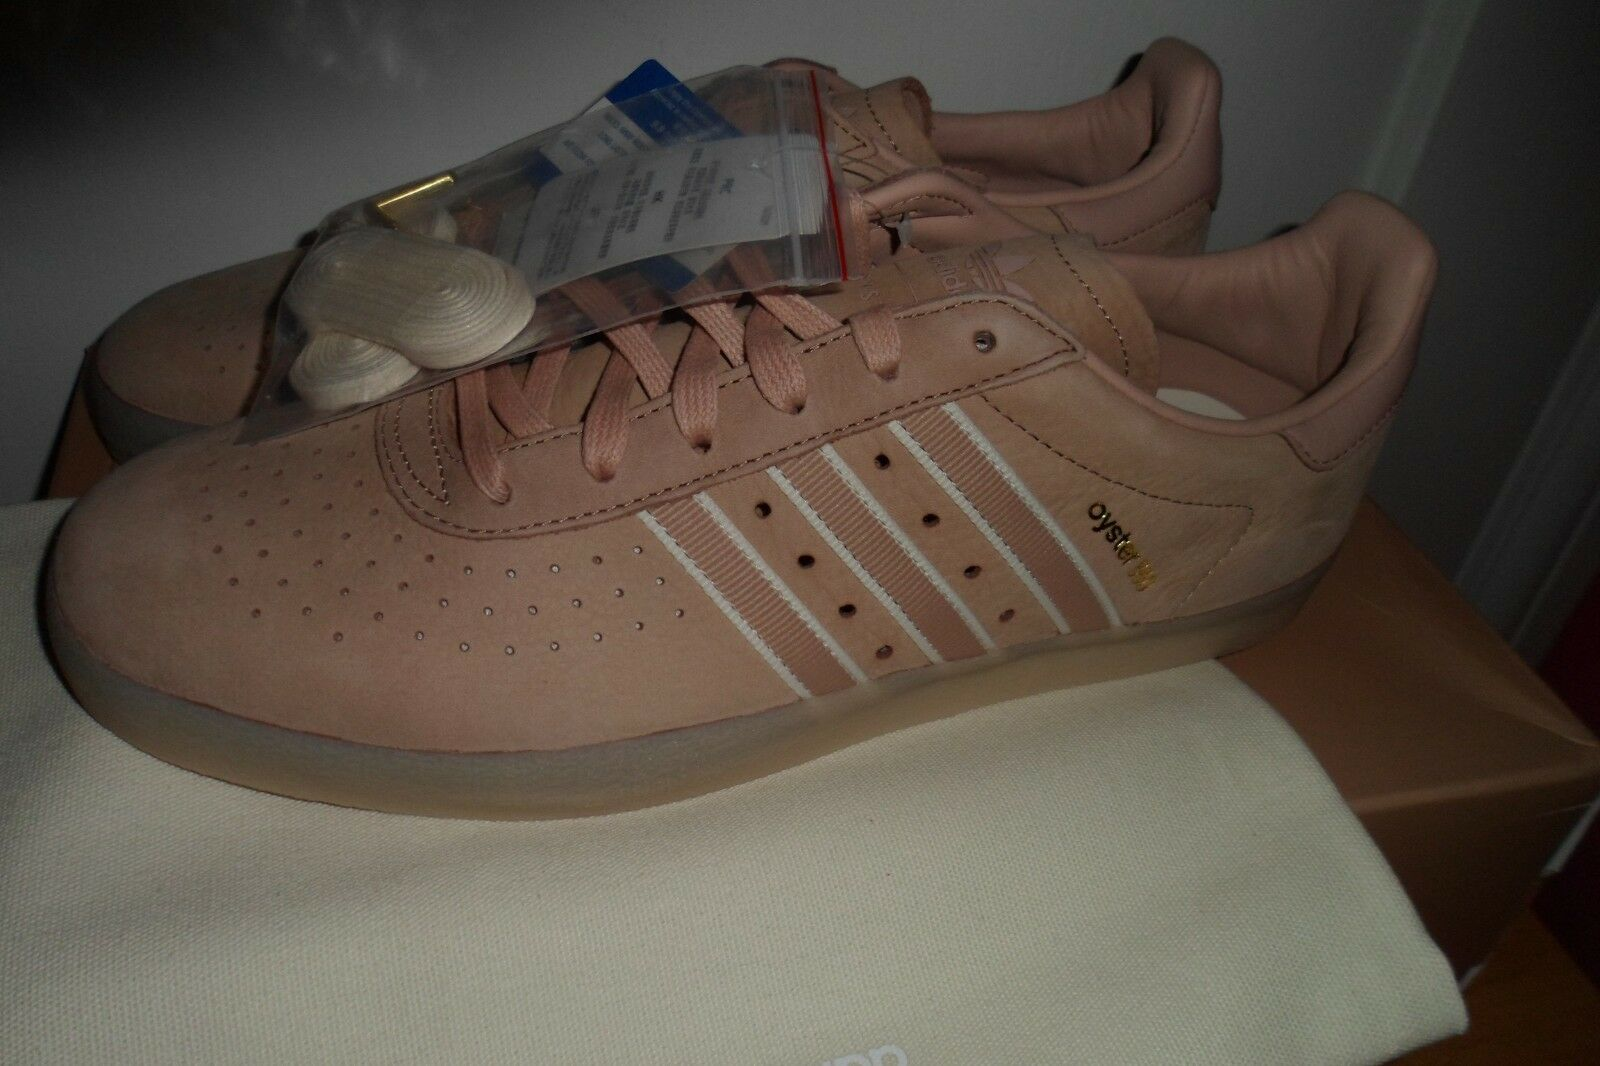 Adidas Originals x Oyster Holdings 350 in Ash Peach Core White gold DB1976 11.5